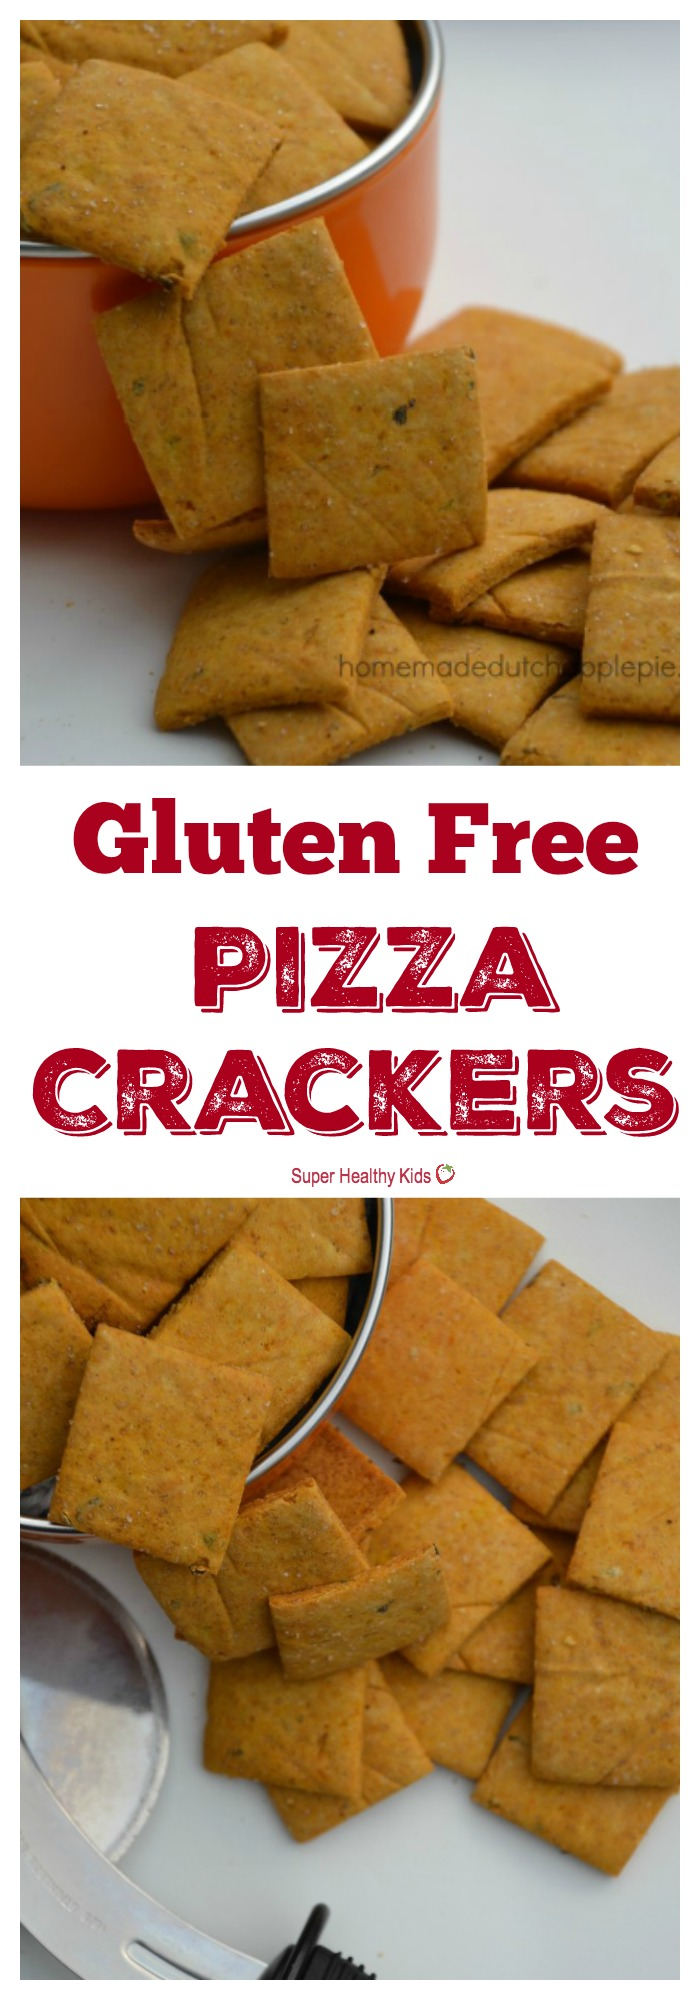 FOOD - Gluten Free Pizza Crackers. Fun and easy gluten free pizza crackers that are allergen friendly, filled with vegetables and perfect for picnics and on-the-go snacks. http://www.superhealthykids.com/gluten-free-pizza-crackers/